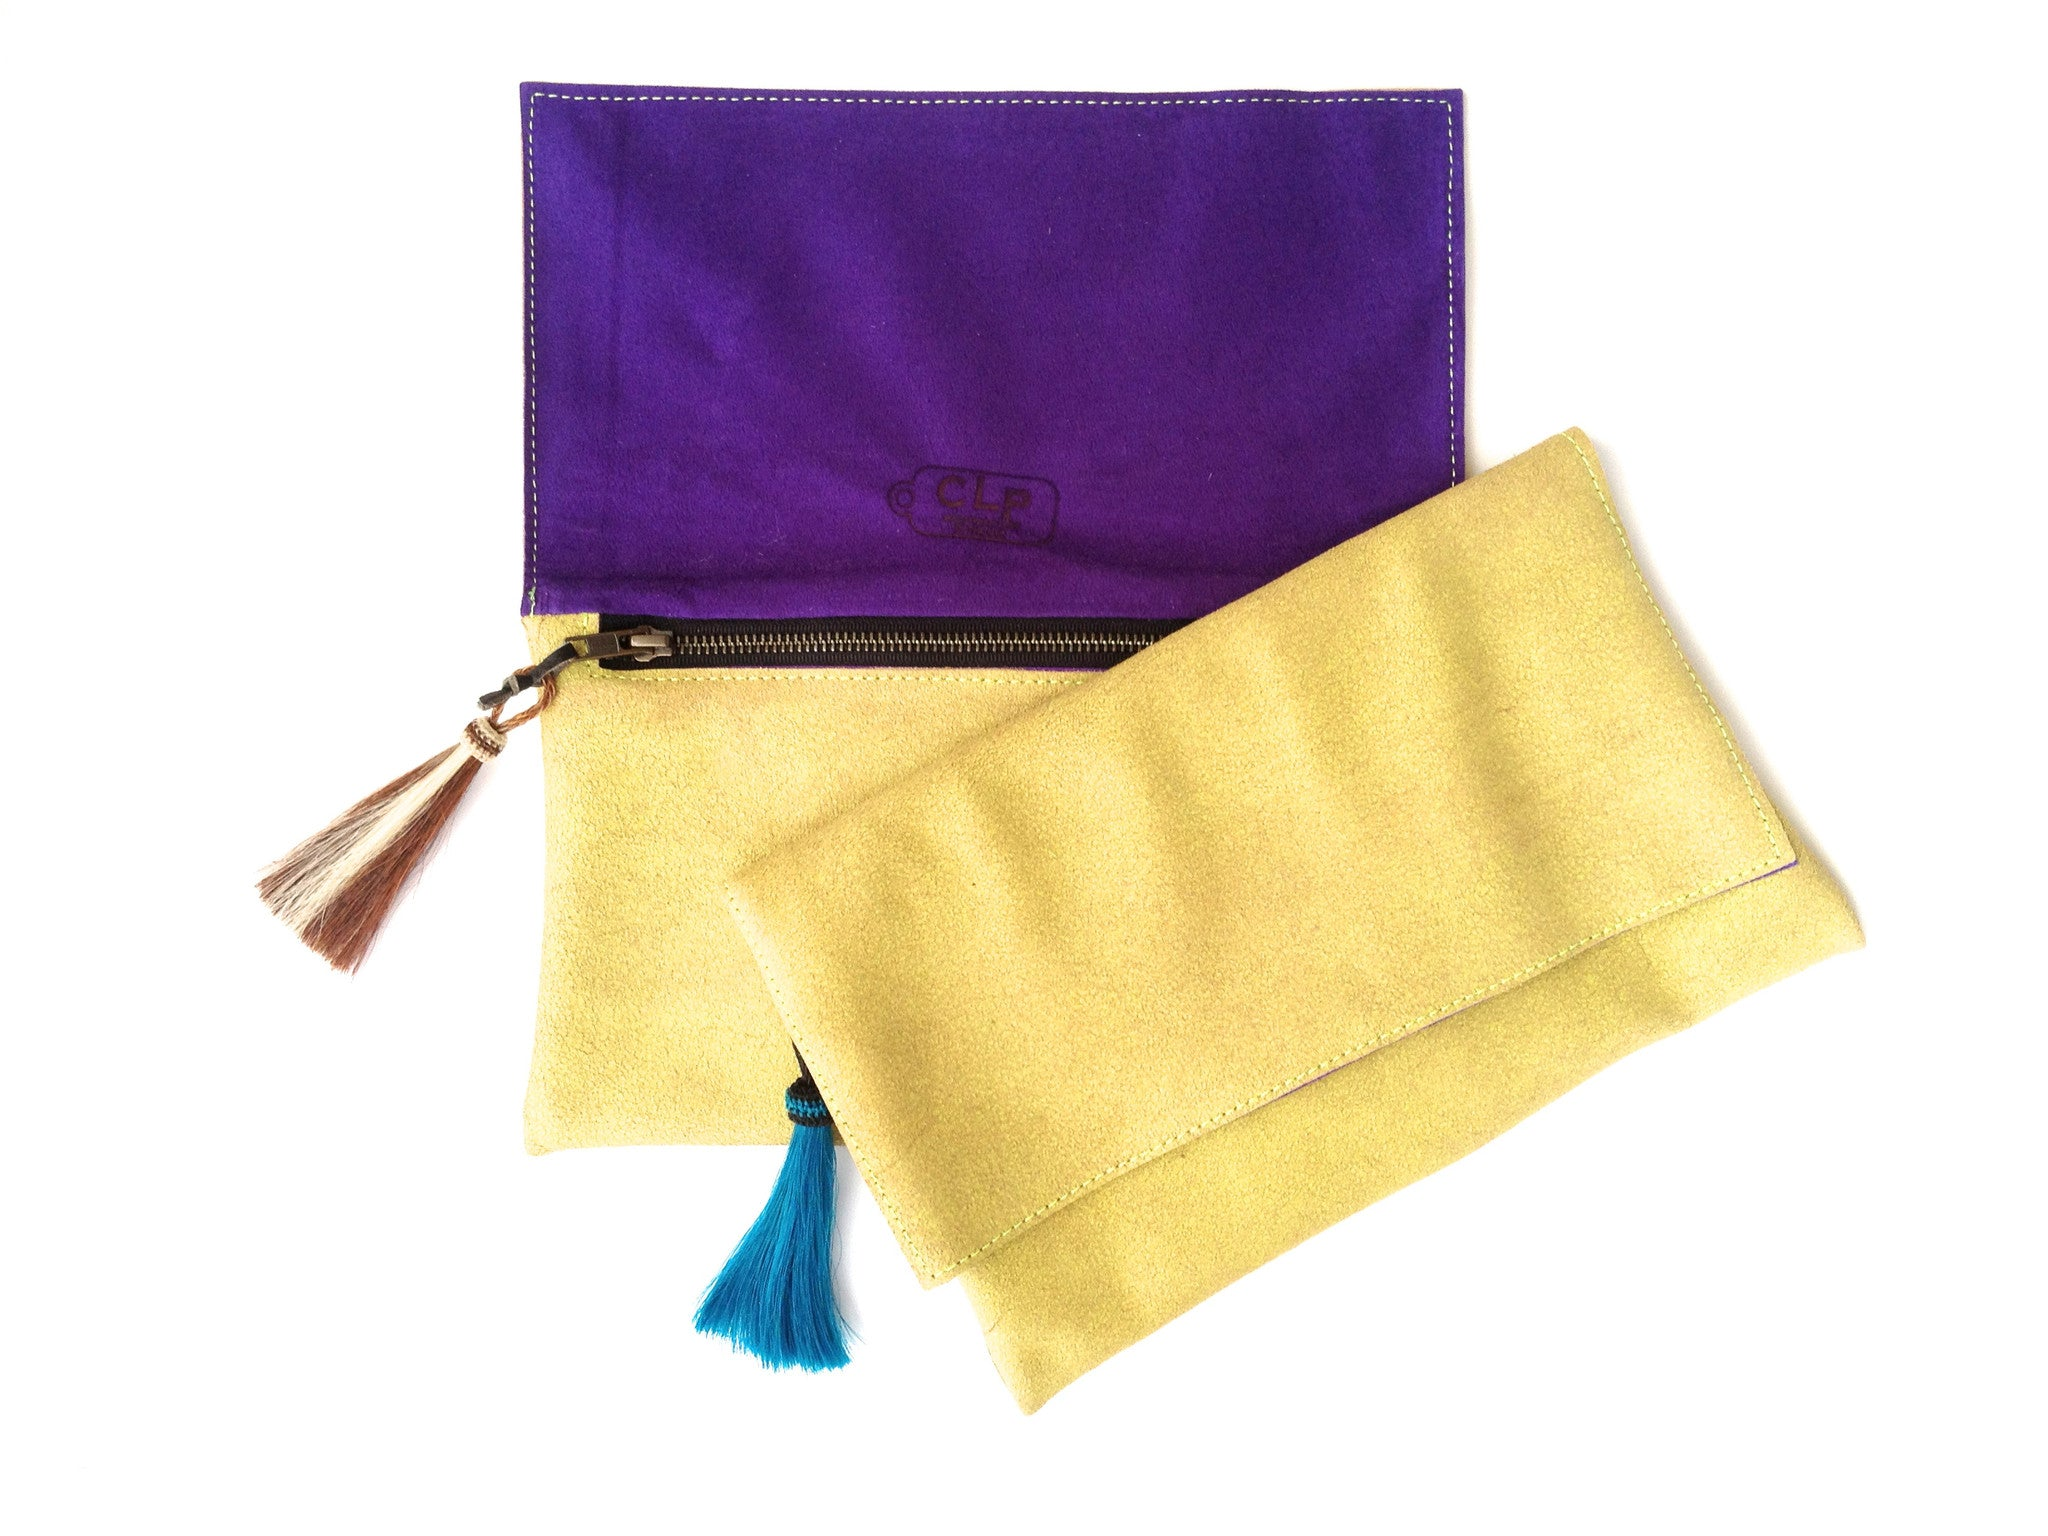 Piseas Horsetail Leather Clutch - Blondie/Teal Tassel